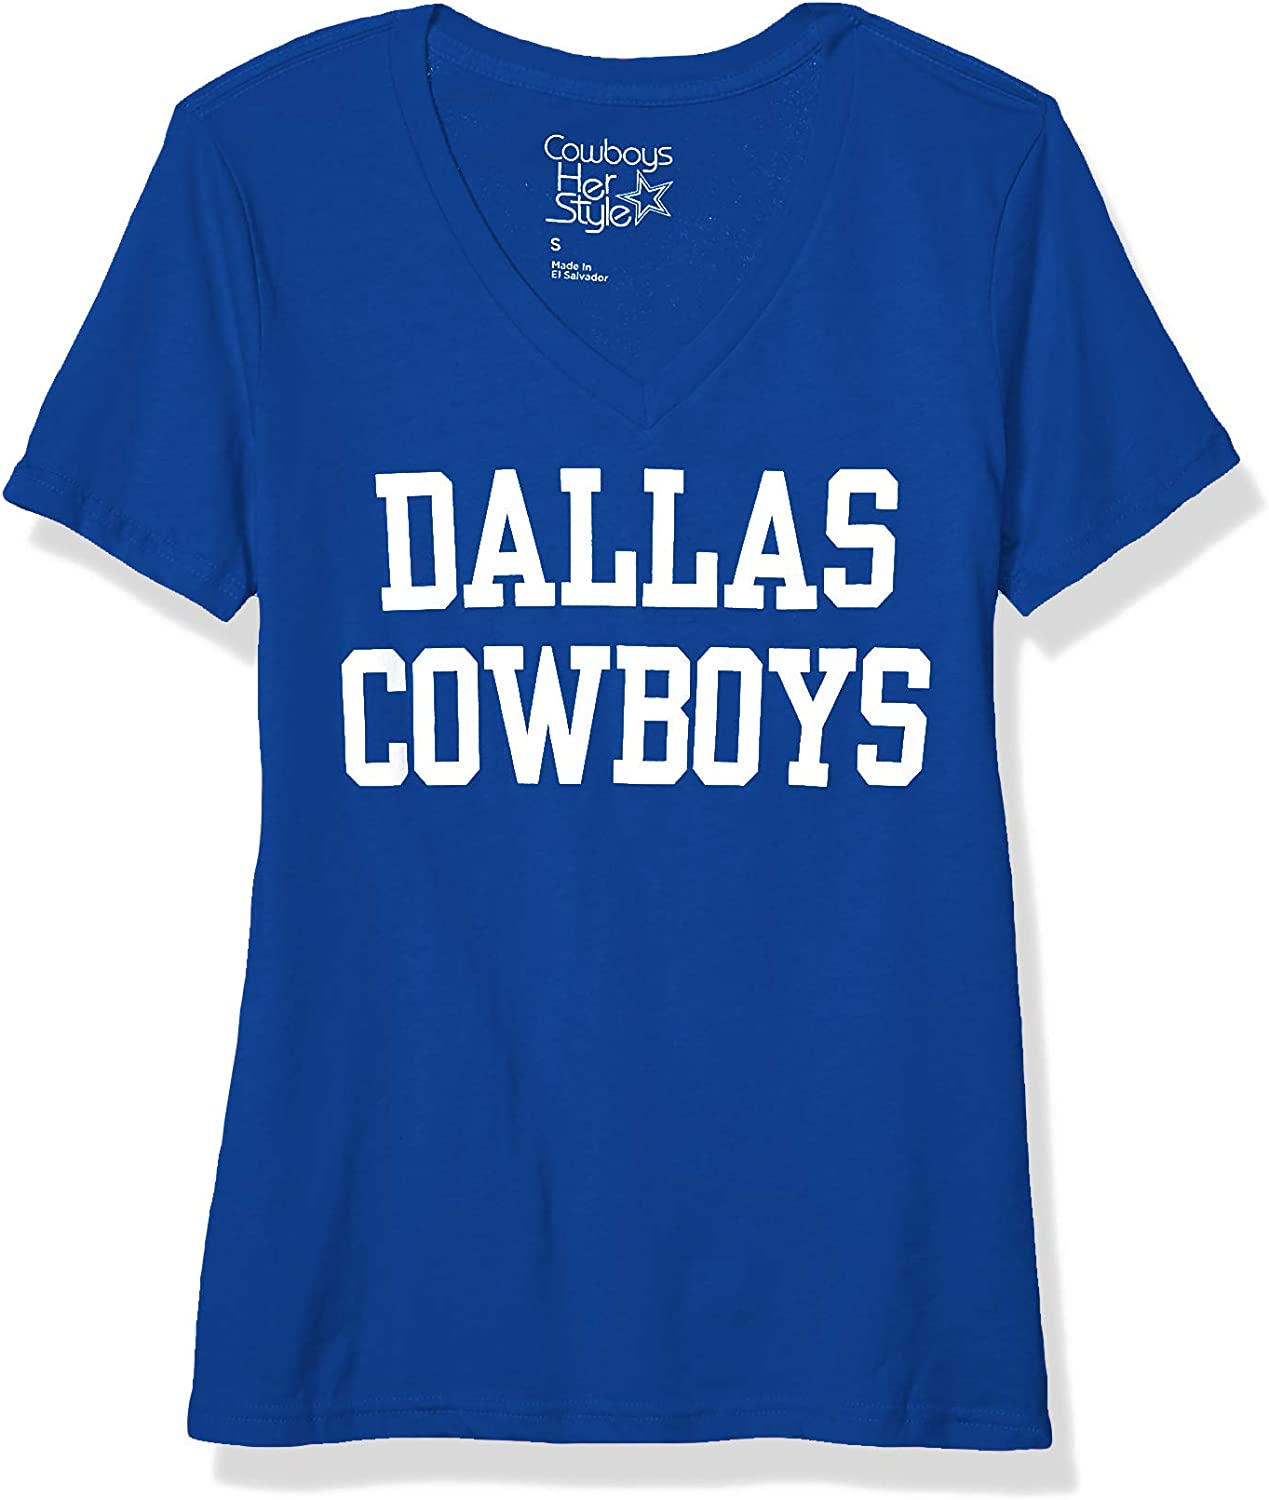 Dallas Cowboys NFL Womens Coaches Too V-Neck Tee